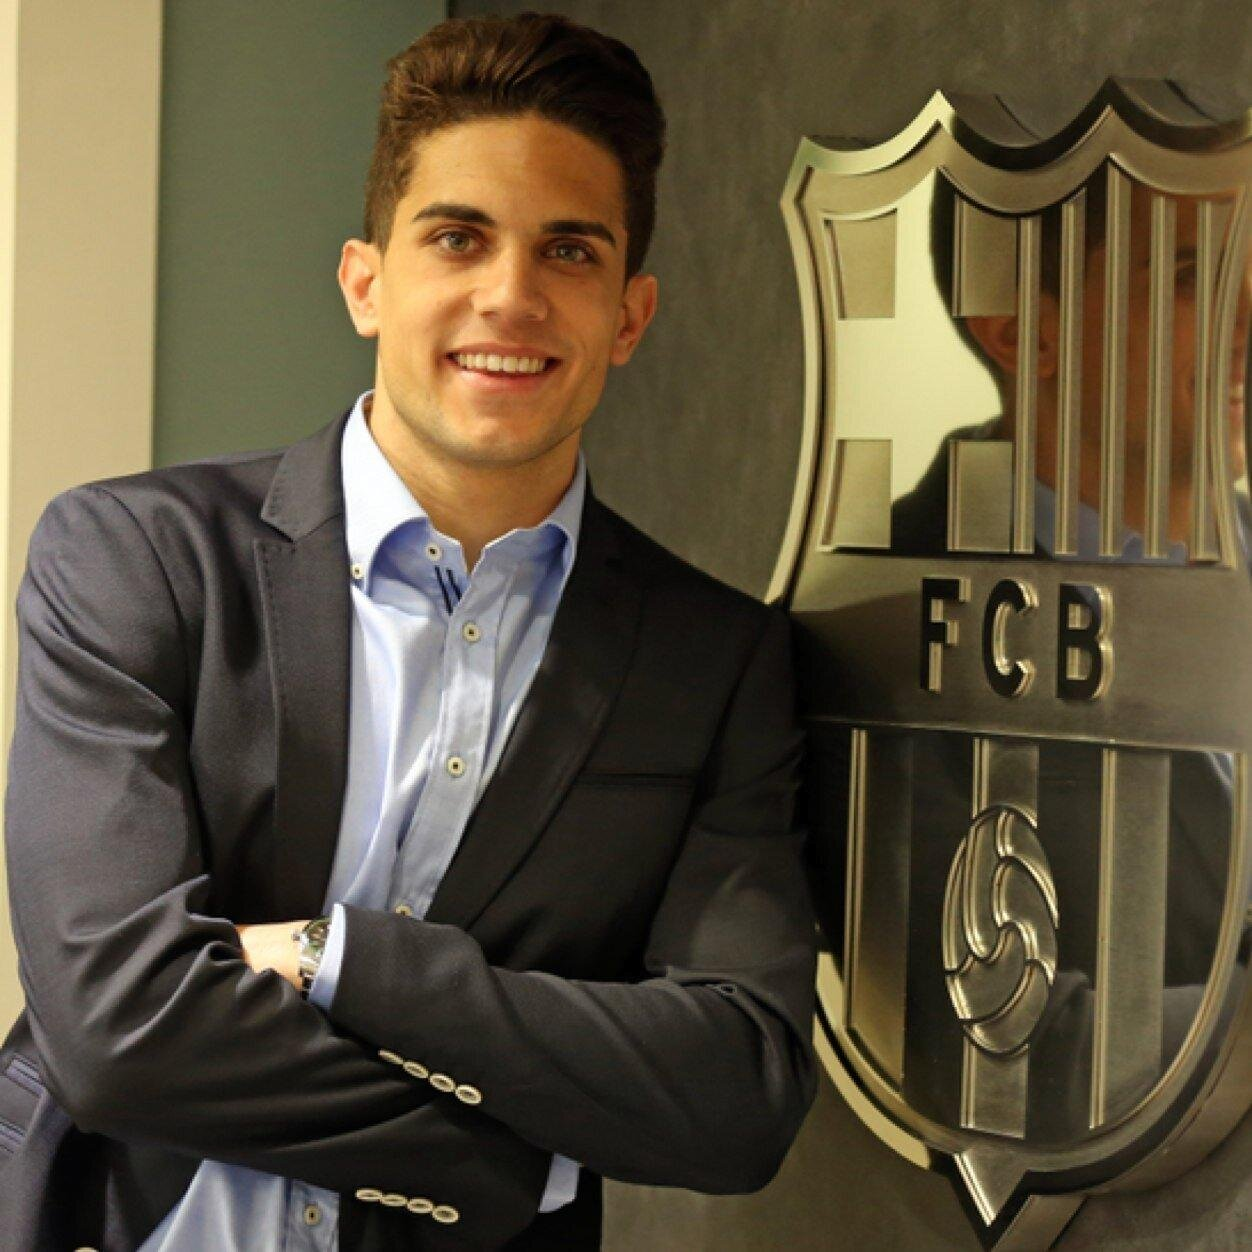 Bartra feels wanted by Club and by the fans